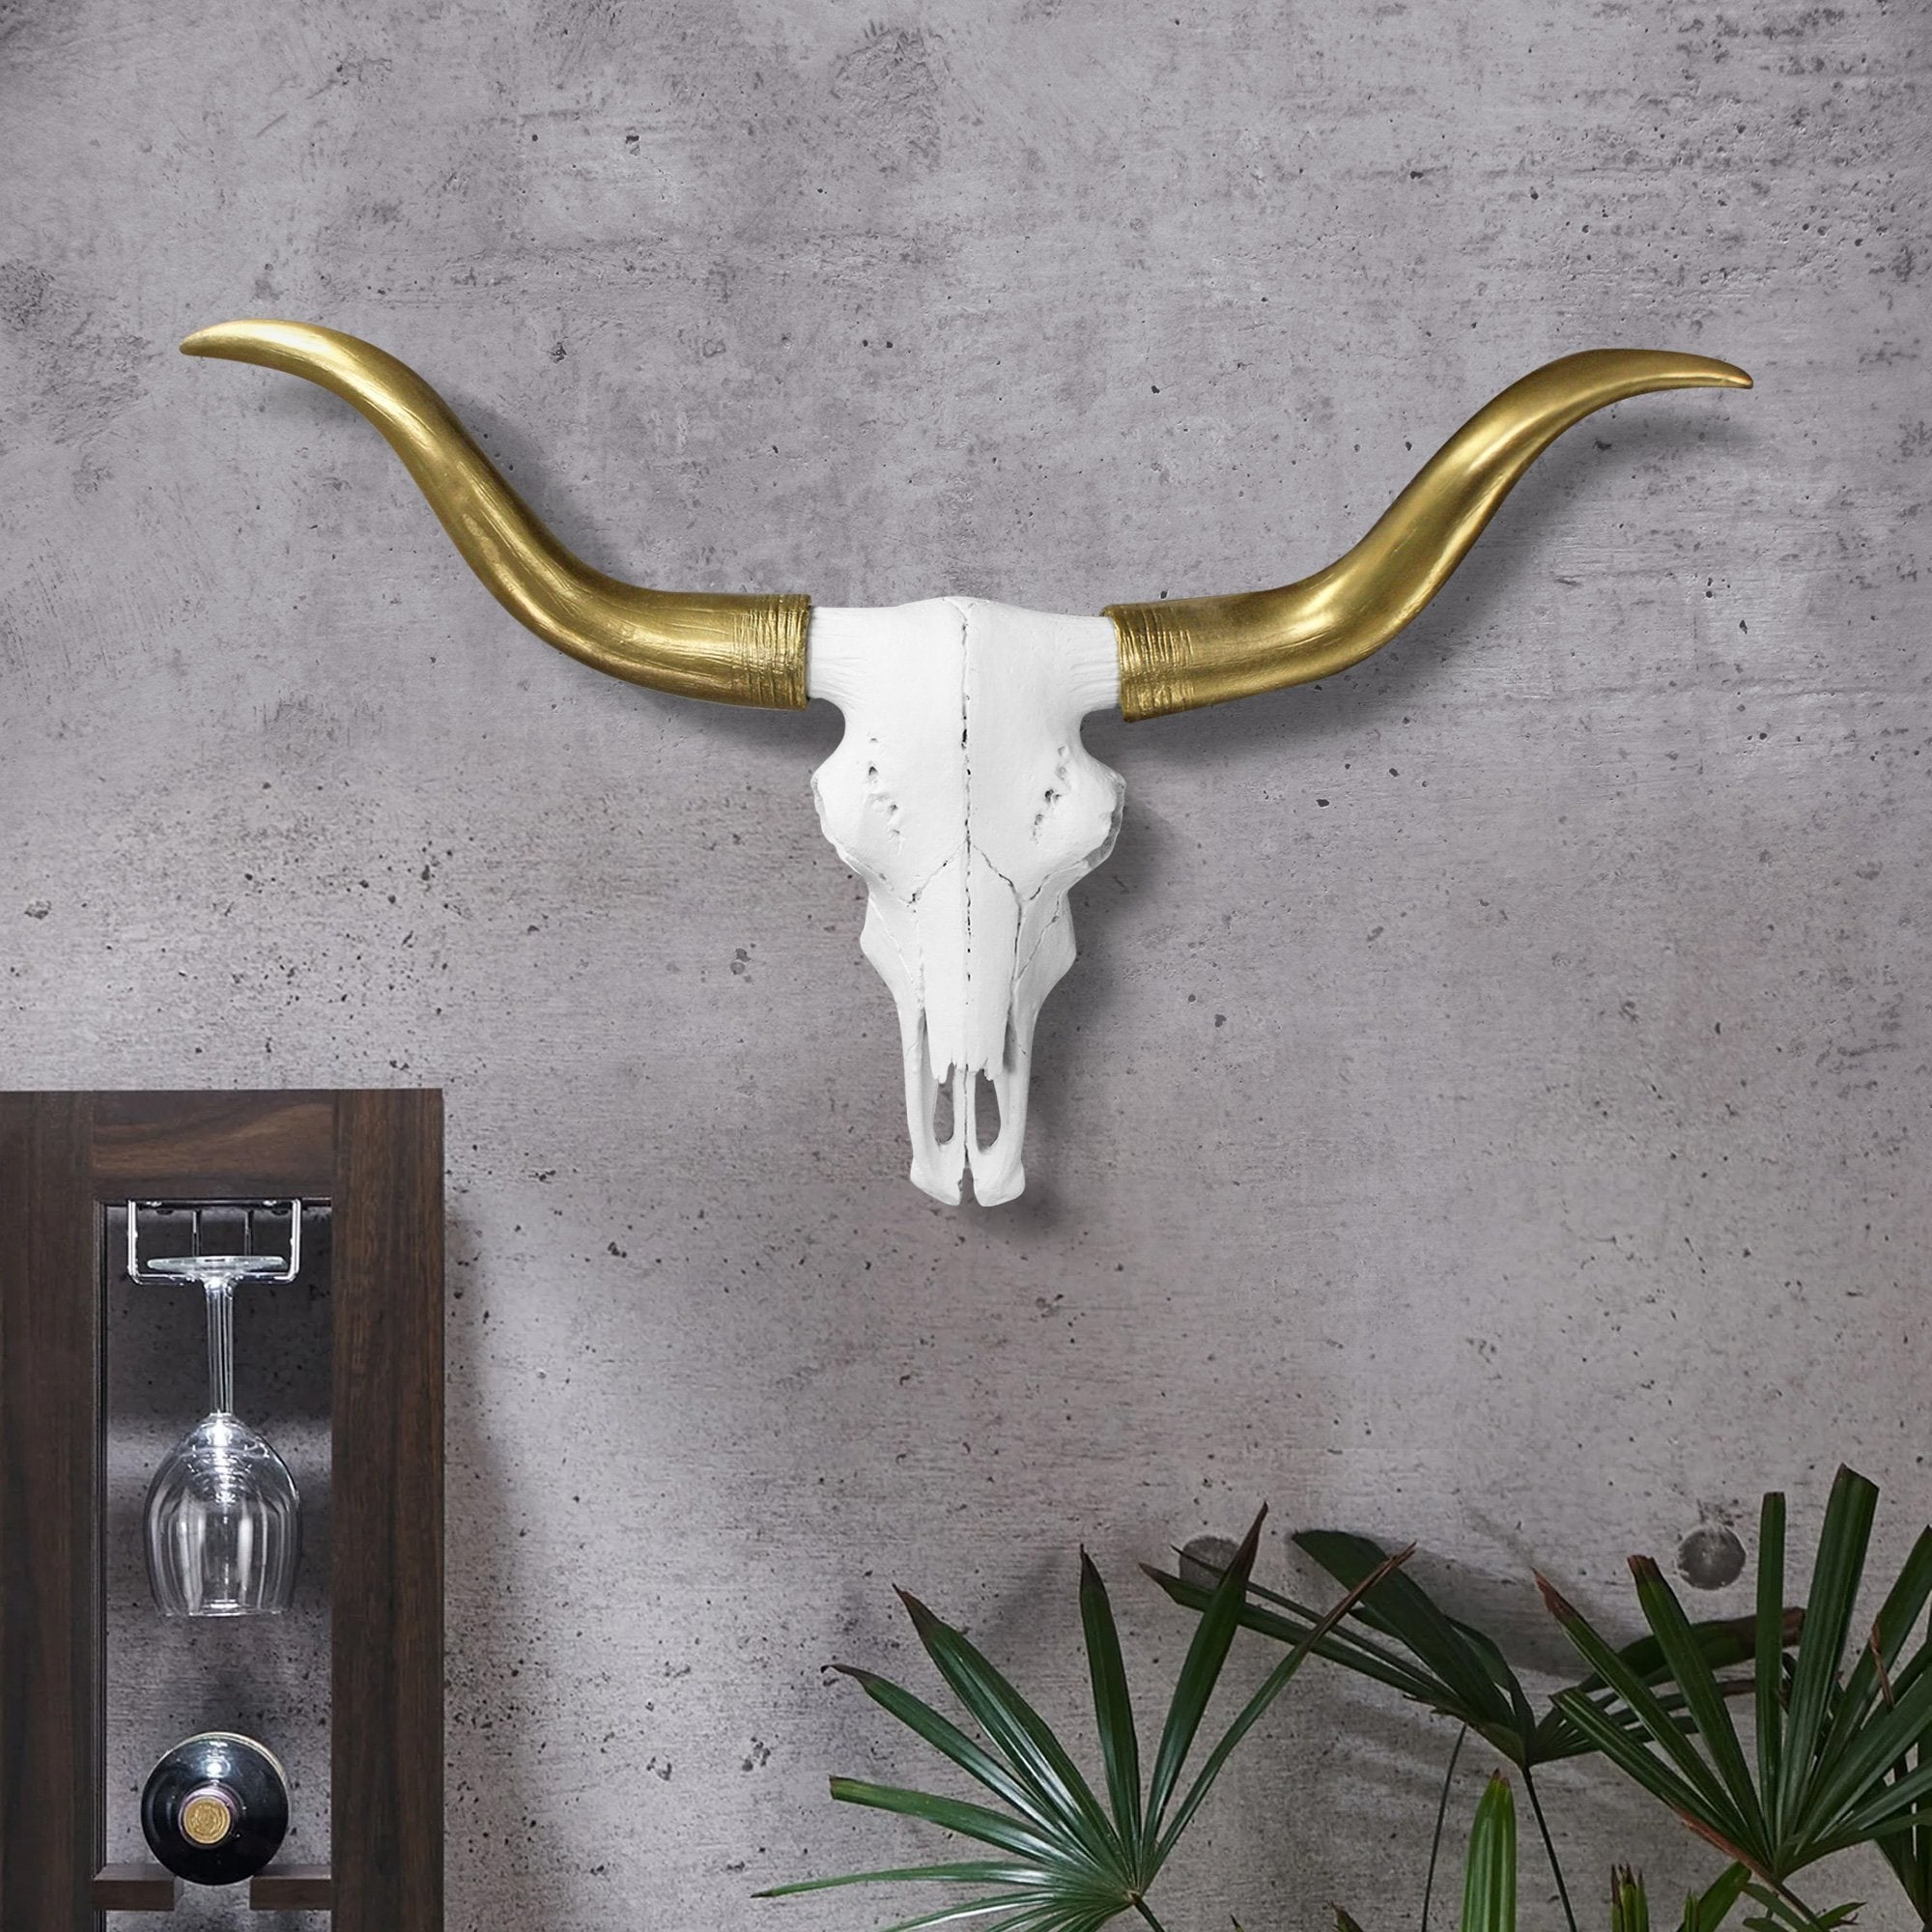 Faux taxidermy longhorn skull, faux longhorn, faux skull, faux taxidermy, animal skull wall mount, farmhouse decor